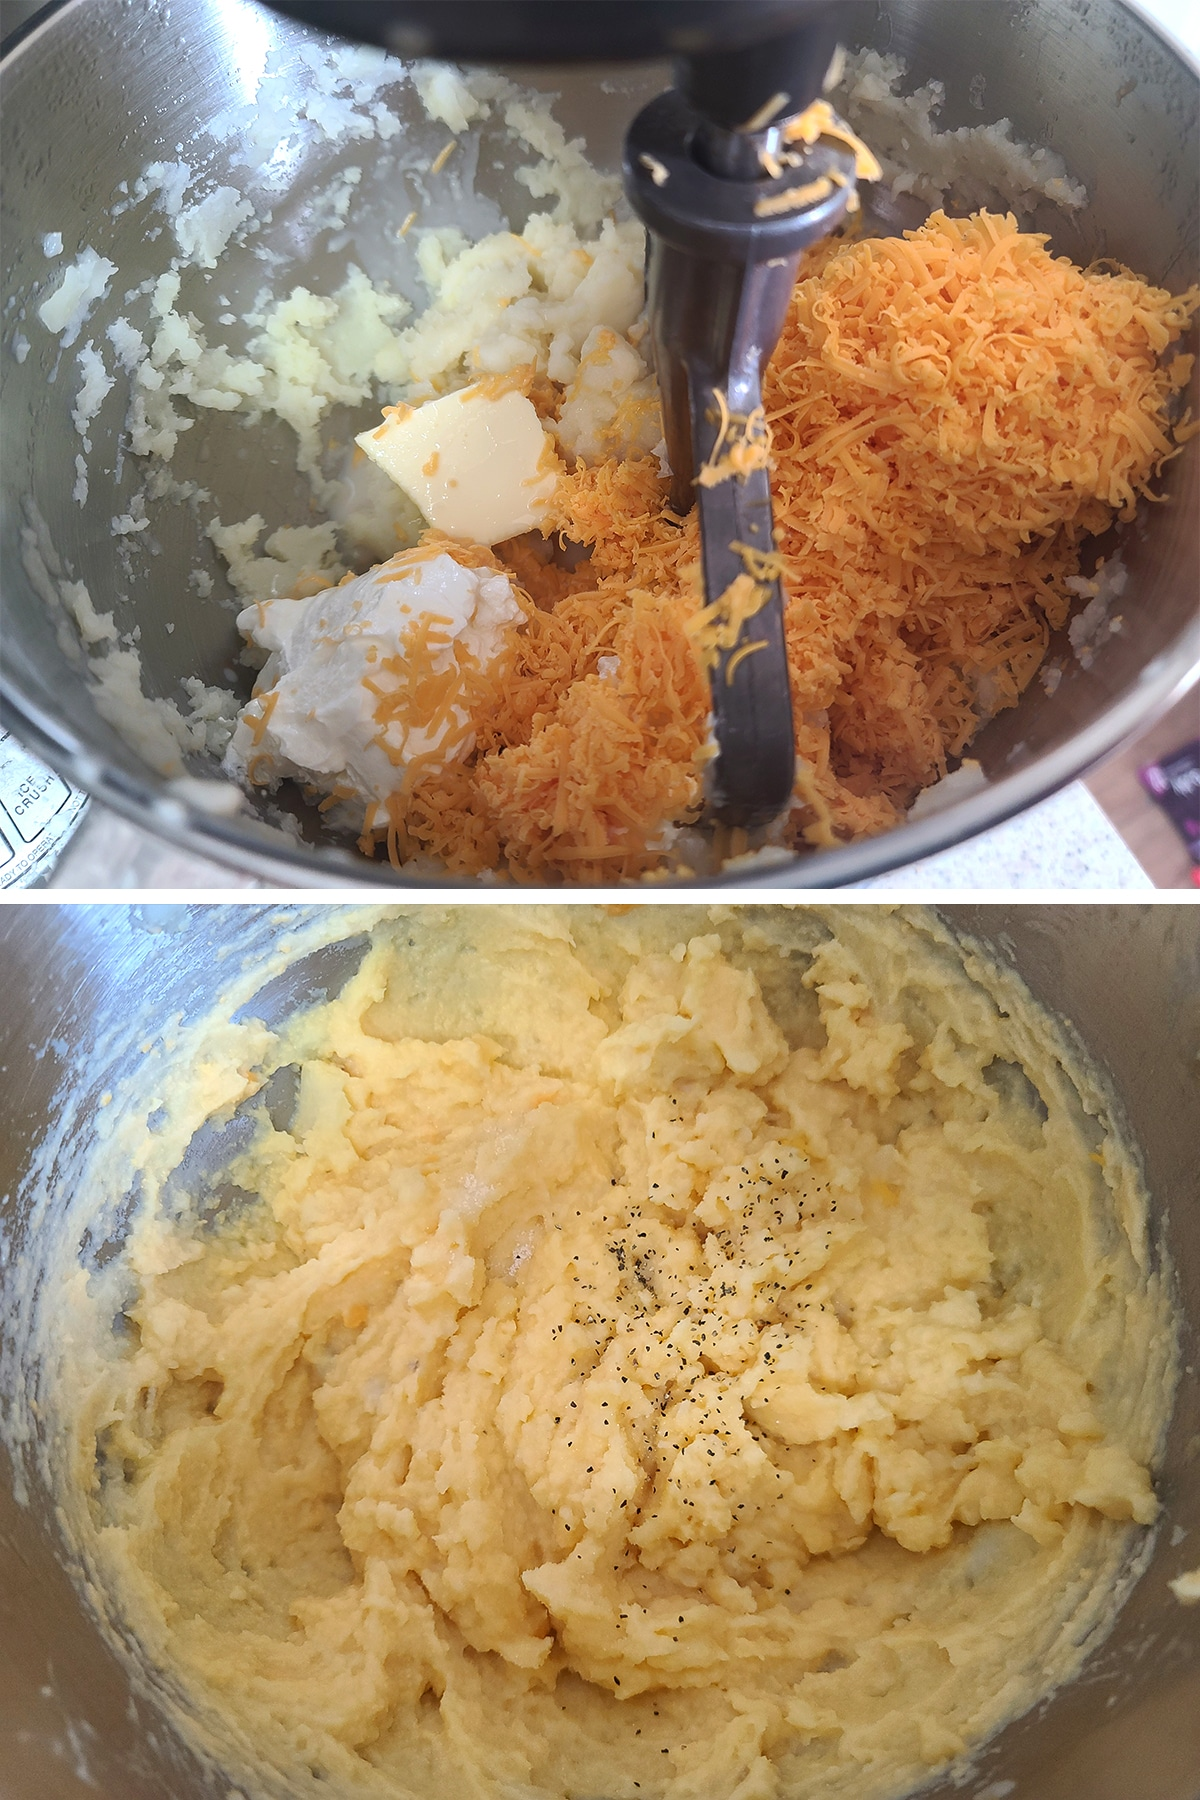 A two part image showing cheese, butter, sour cream, and milk being added to mashed potatoes, then the finished mixture after beating it together.